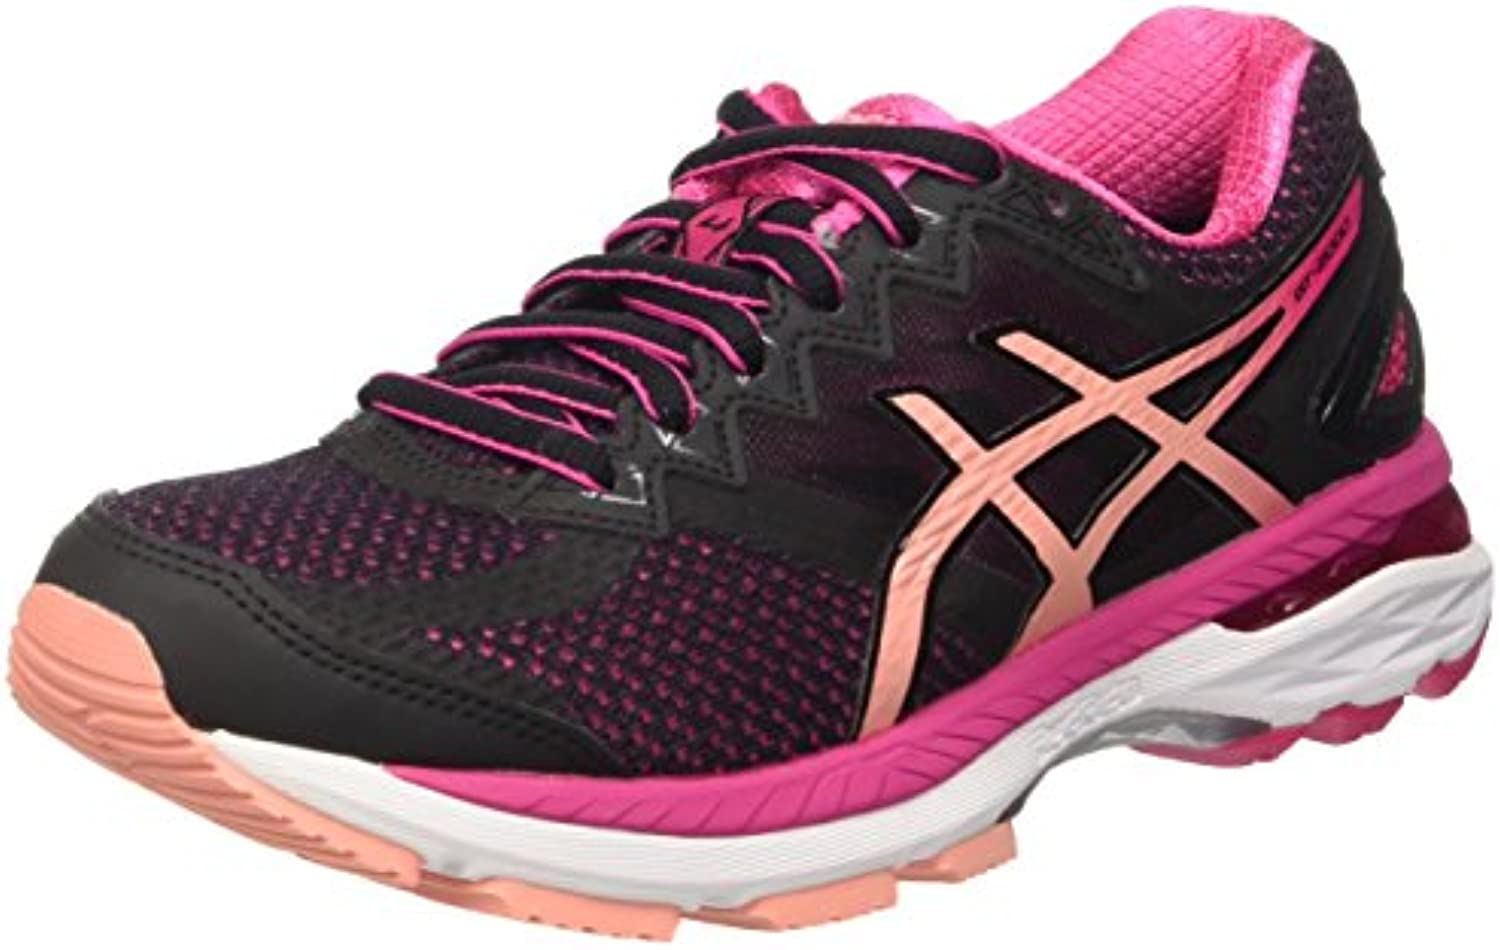 Asics - GT 2000 4 - Scarpa Scarpa Scarpa Running donna | Shopping Online